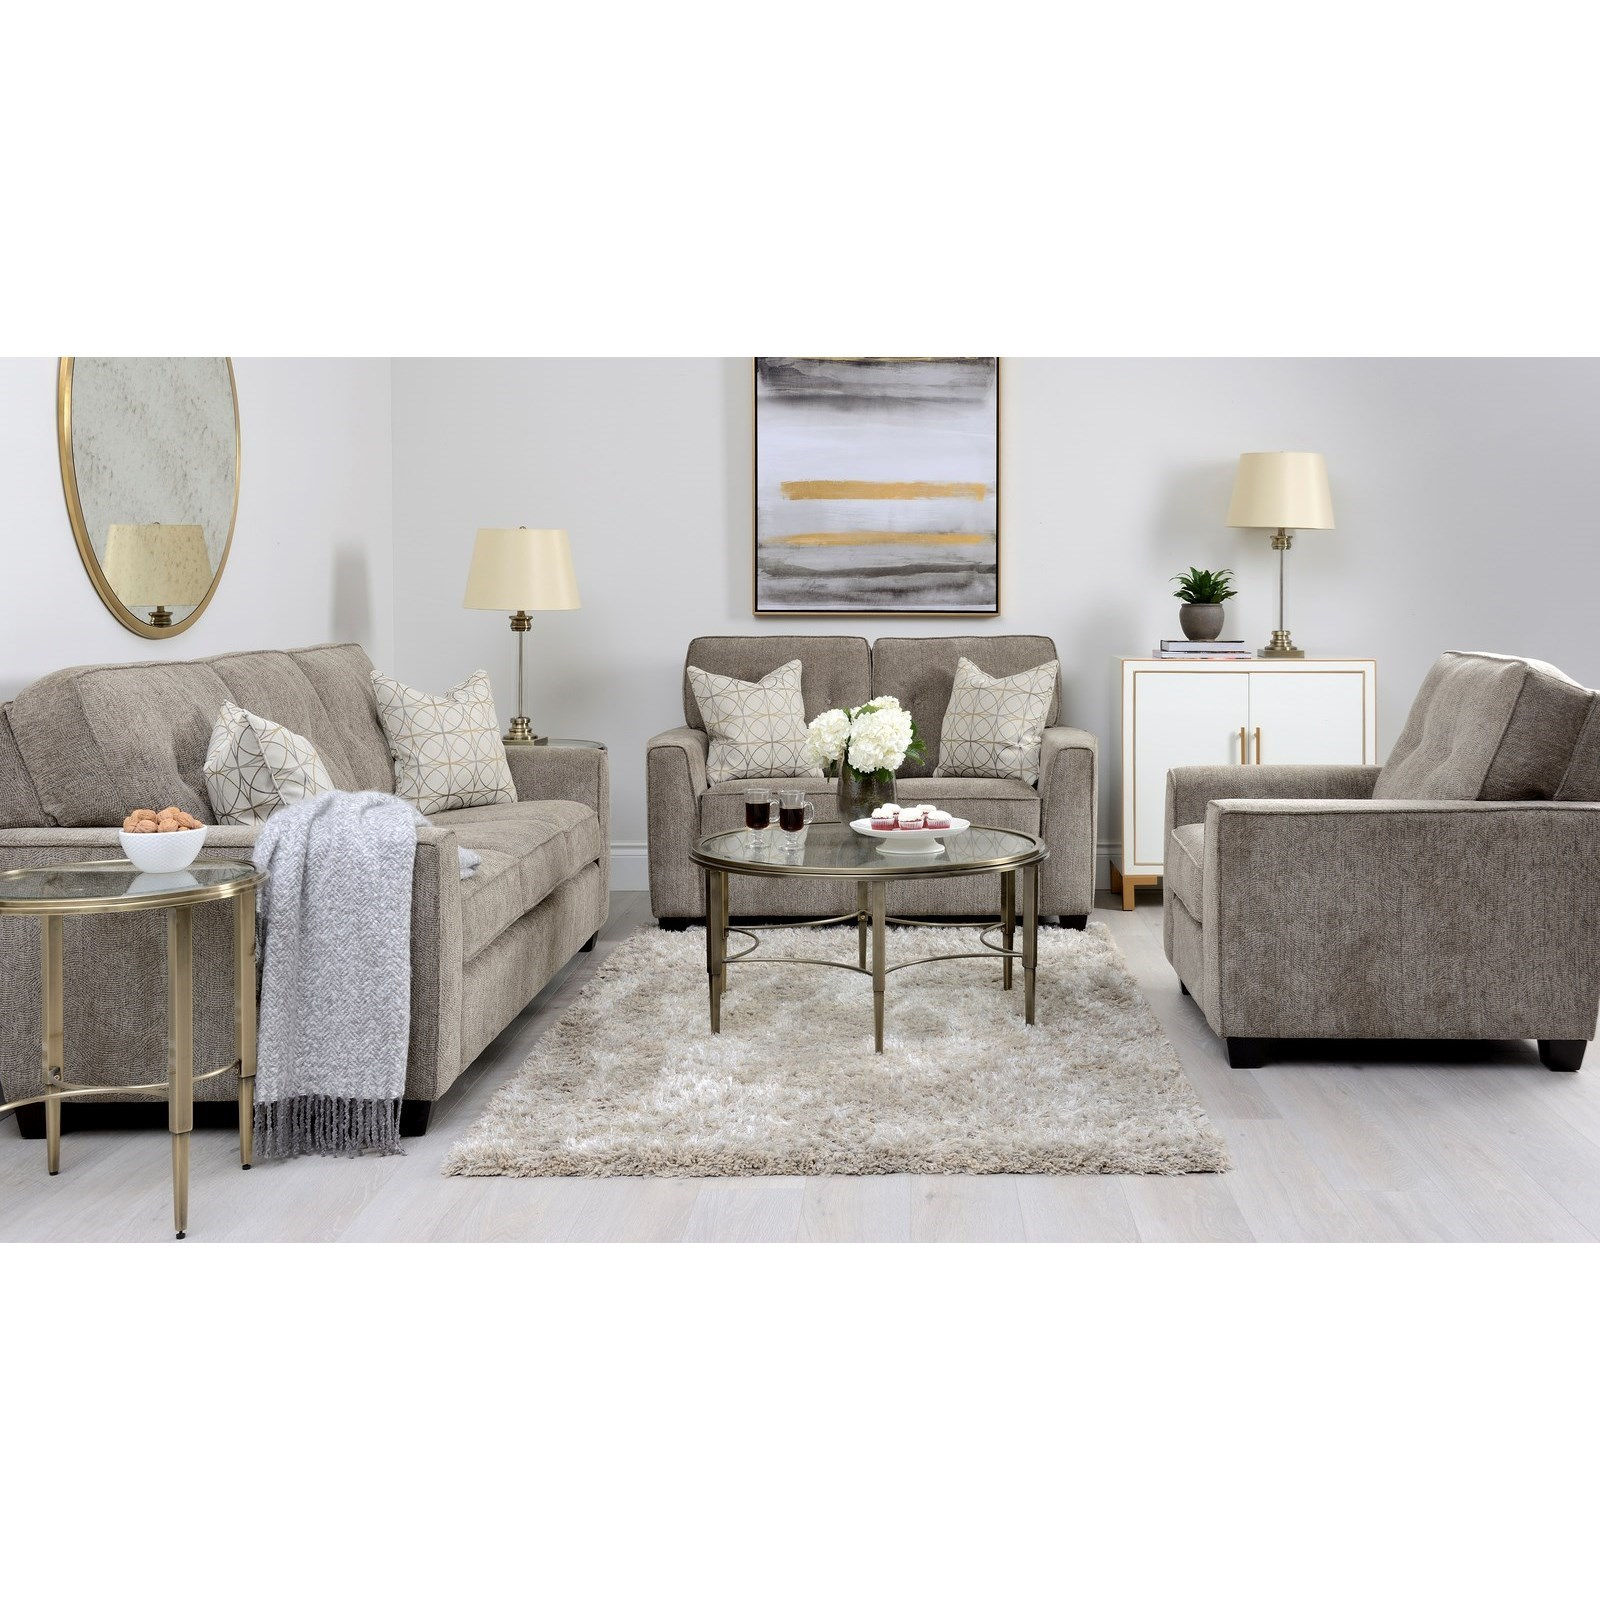 2967 Living Room Group by Decor-Rest at Rooms for Less